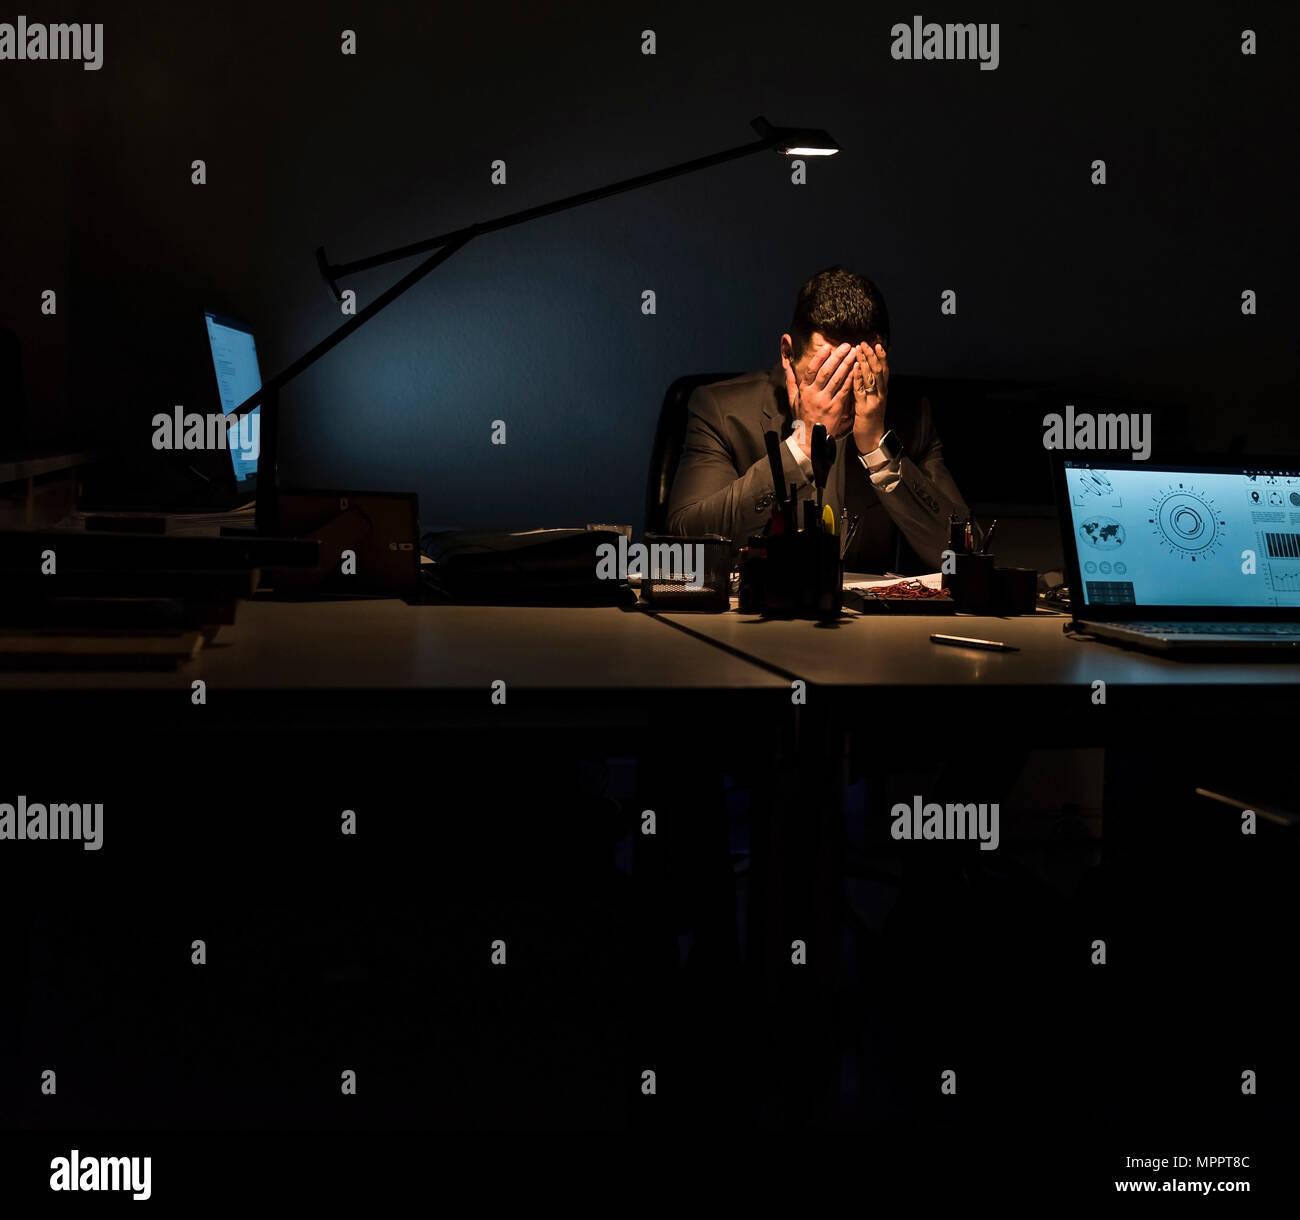 Overstressed businessman sitting at his desk in the dark - Stock Image